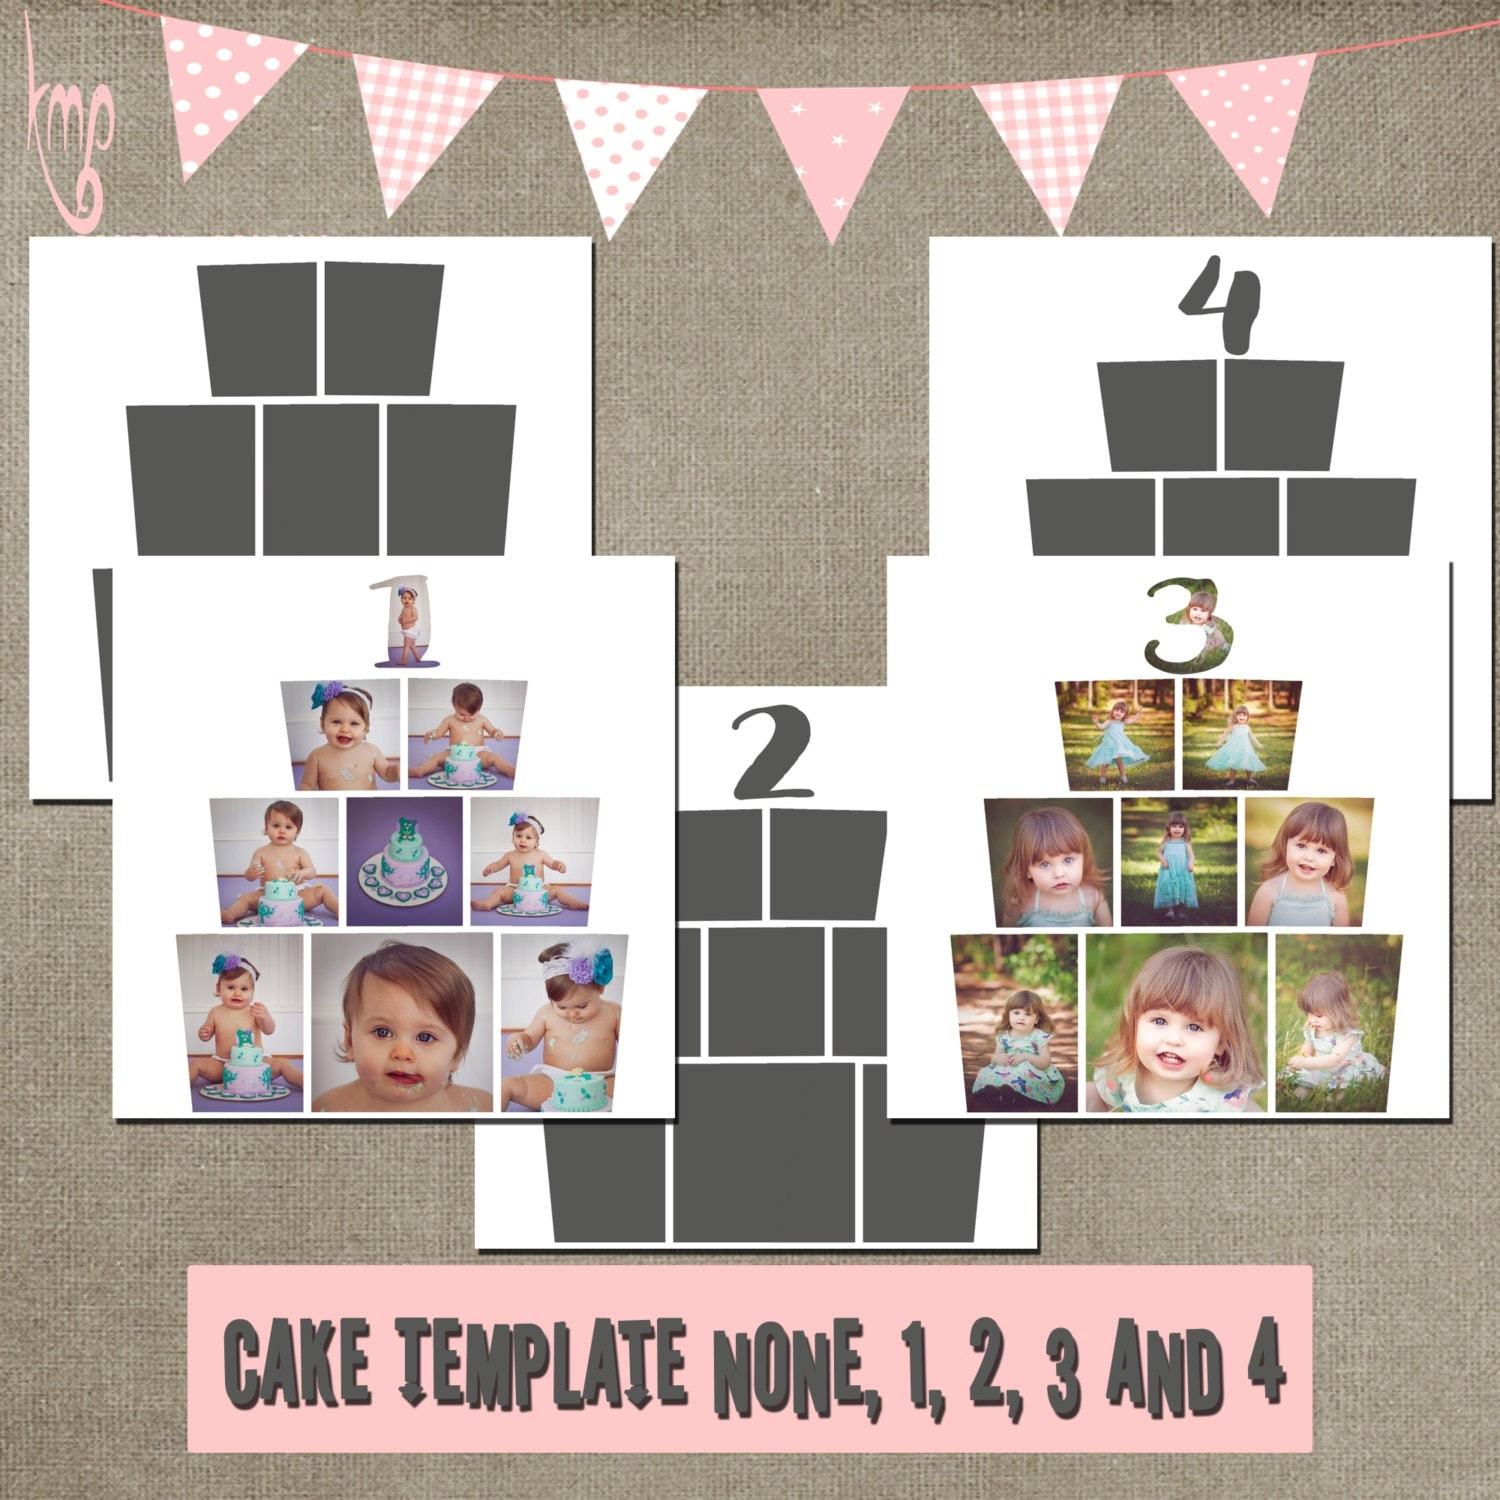 cake cakesmash template cake smash collage storyboard square. Black Bedroom Furniture Sets. Home Design Ideas